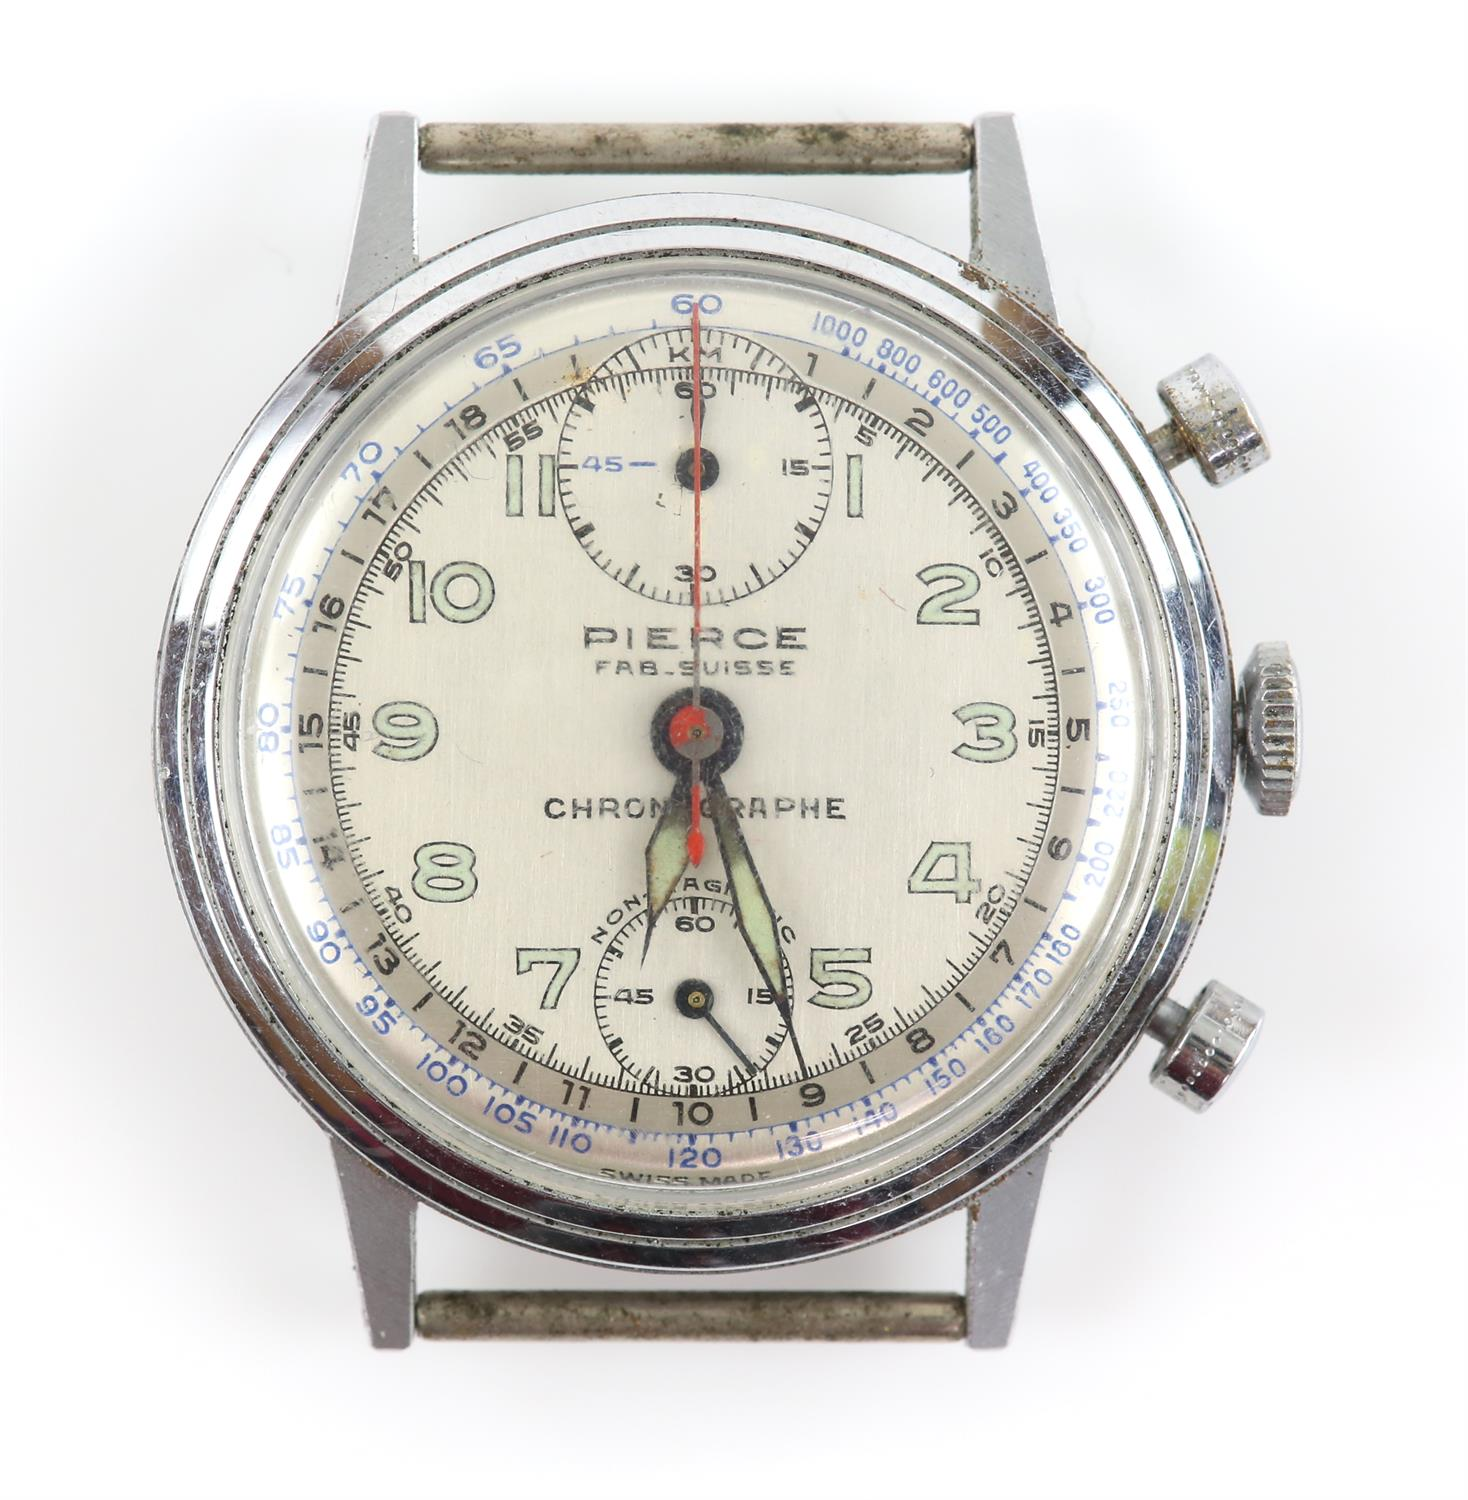 Pierce A Gentleman's stainless steel up down chronograph wrist watch, the dial signed Pierce Fab